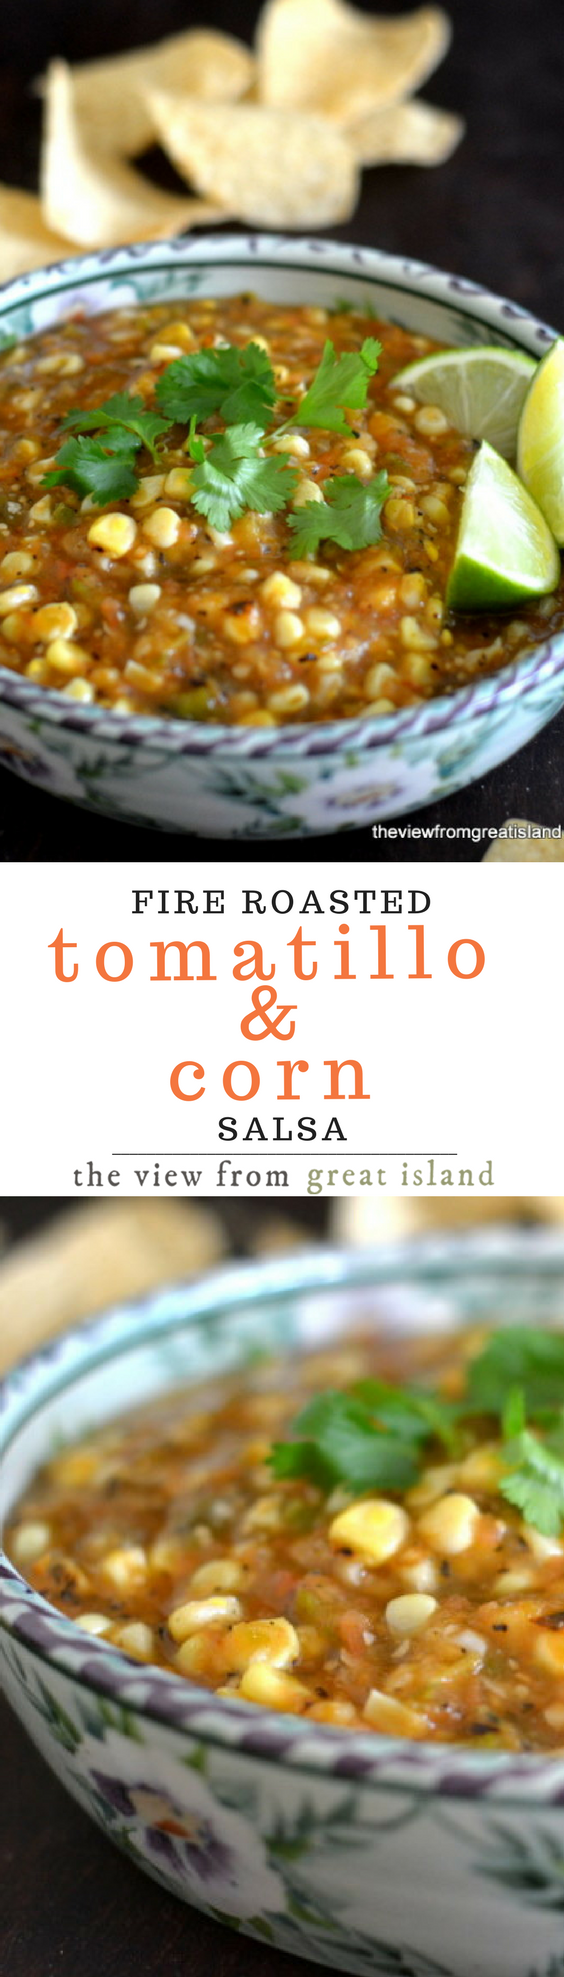 Fire Roasted Tomatillo & Corn Salsa ~ everything that goes into this zesty salsa is charred over an open flame first, so the rich, smokey flavor is infused throughout. Enjoy it with grilled meats, poultry, fish, and tacos, or simply with a big bag of tortilla chips. #salsa #appetizer #cincodemayo #memorialday #summer #4thofjuly #corn #tomatillo #fresh #homemadesalsa #recipe #cornsalsa #mexicansalsa